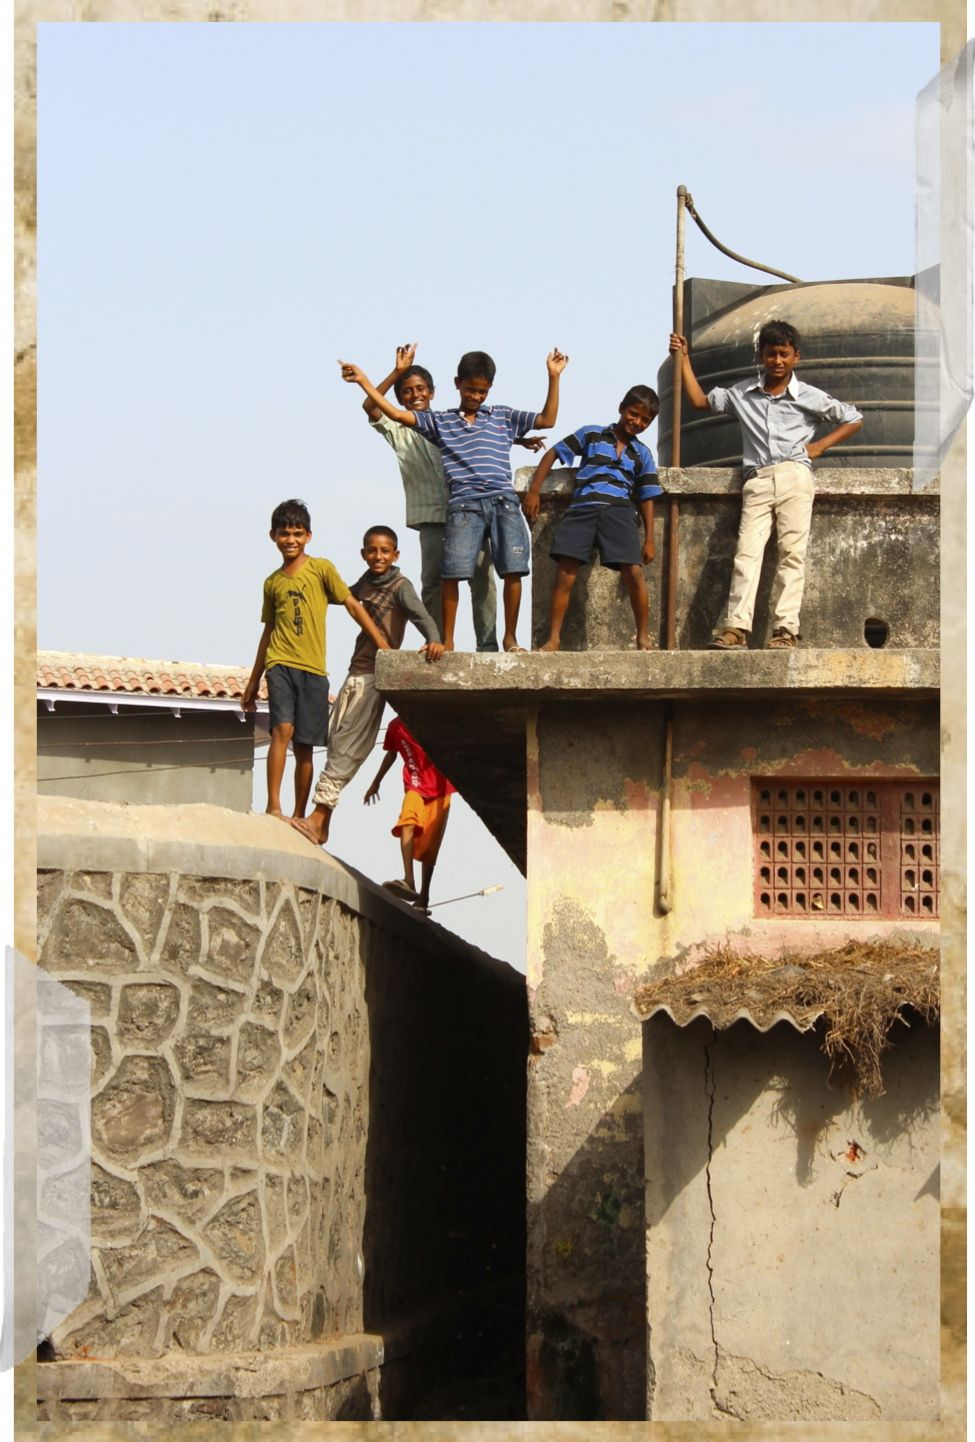 boys on roof